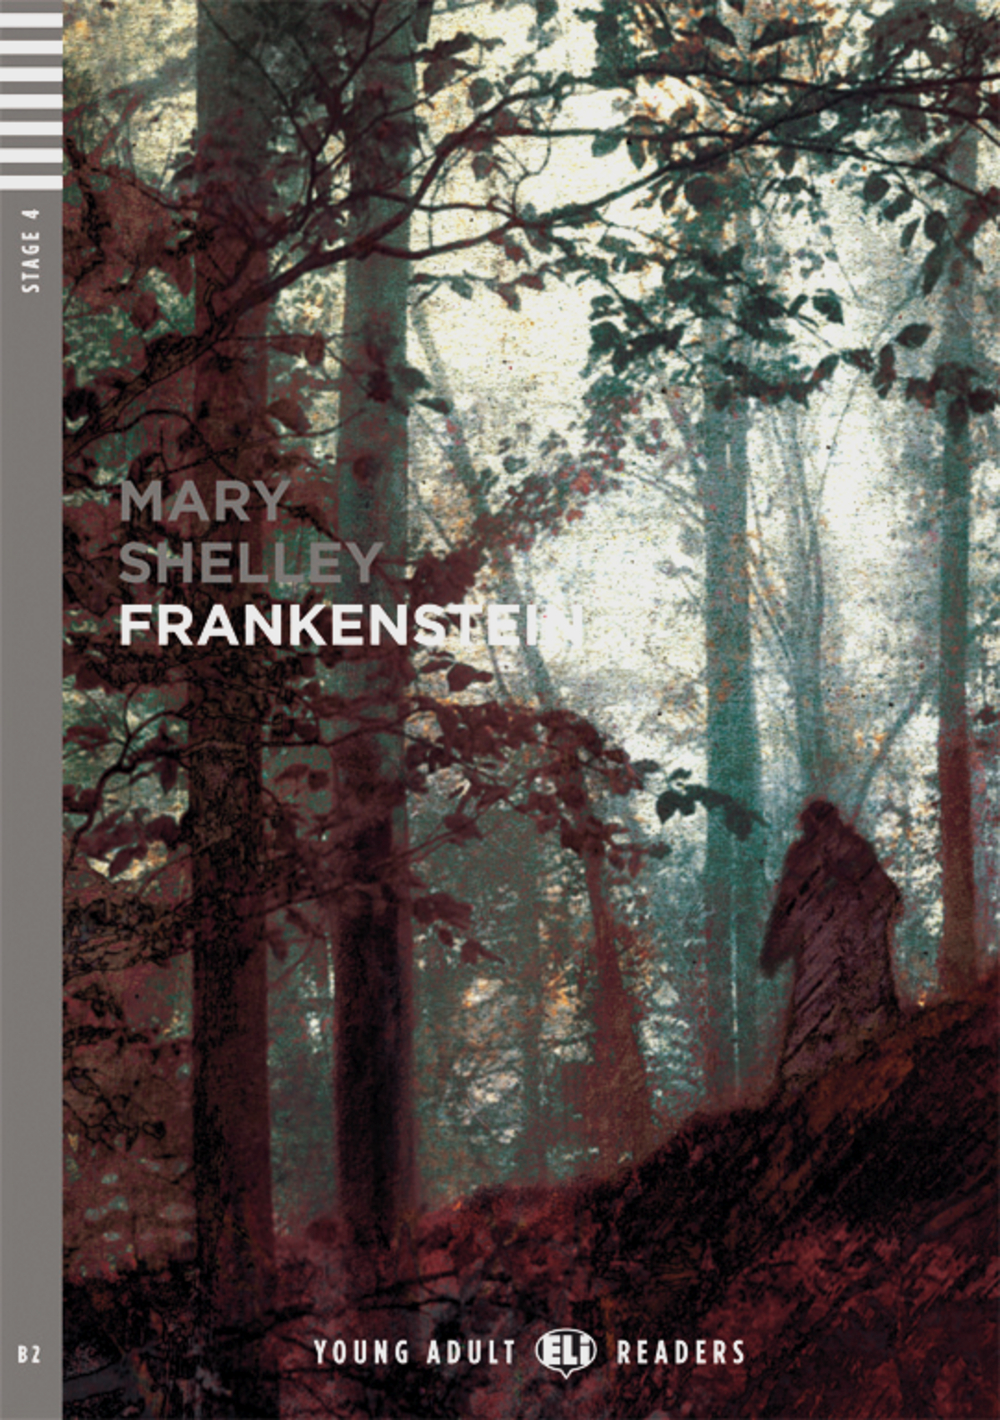 Frankenstein: Or the modern prometheus - Mary S...